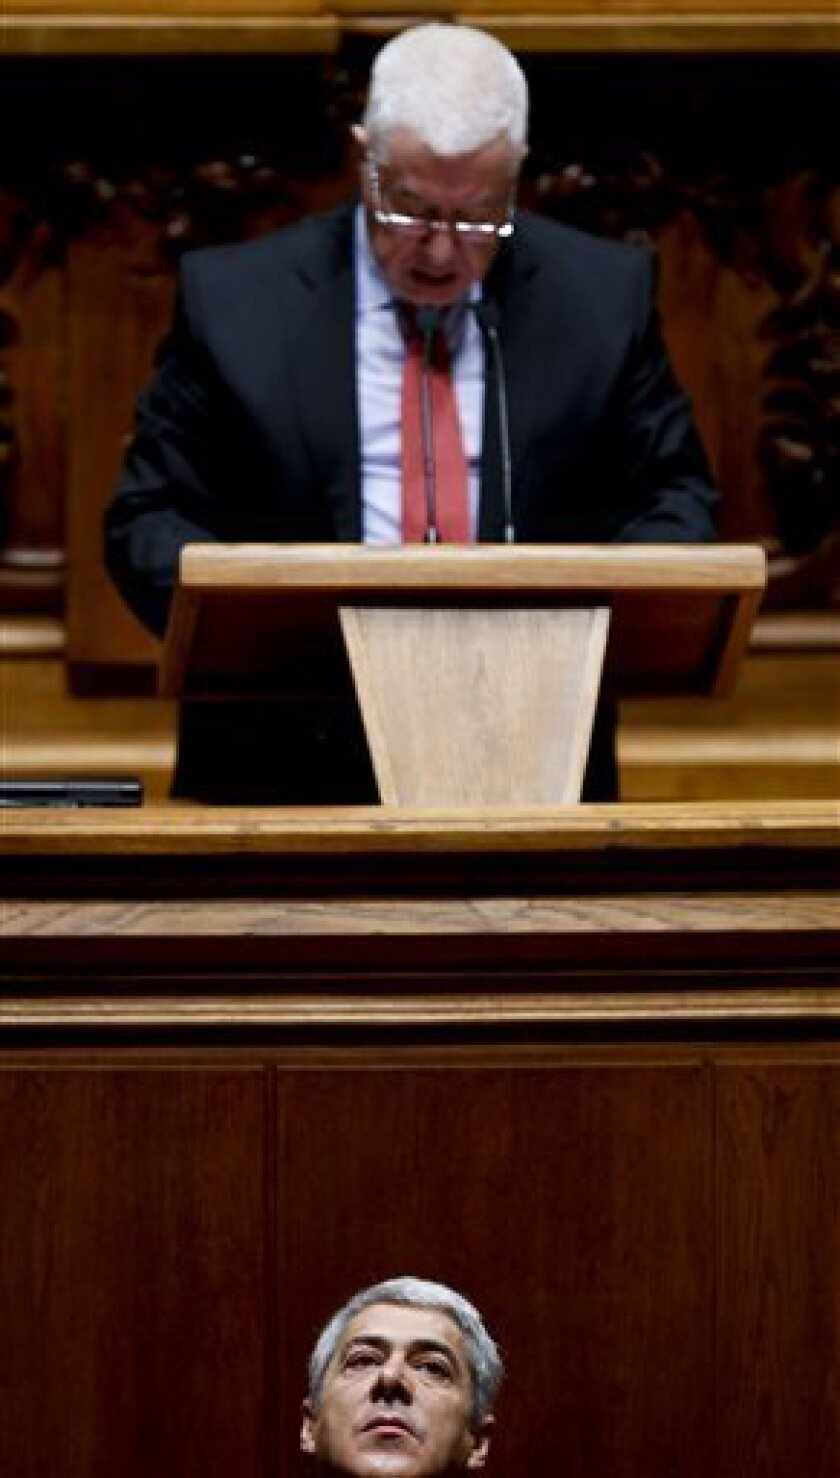 Portuguese Prime Minister Jose Socrates, bottom, looks up as Finance Minister Fernando Teixeira dos Santos, top, addresses to the Portuguese parliament during the final vote of his government's 2011 state budget on Friday, Nov. 26, 2010 in Lisbon. Portugal's Parliament has approved a plan to hike t